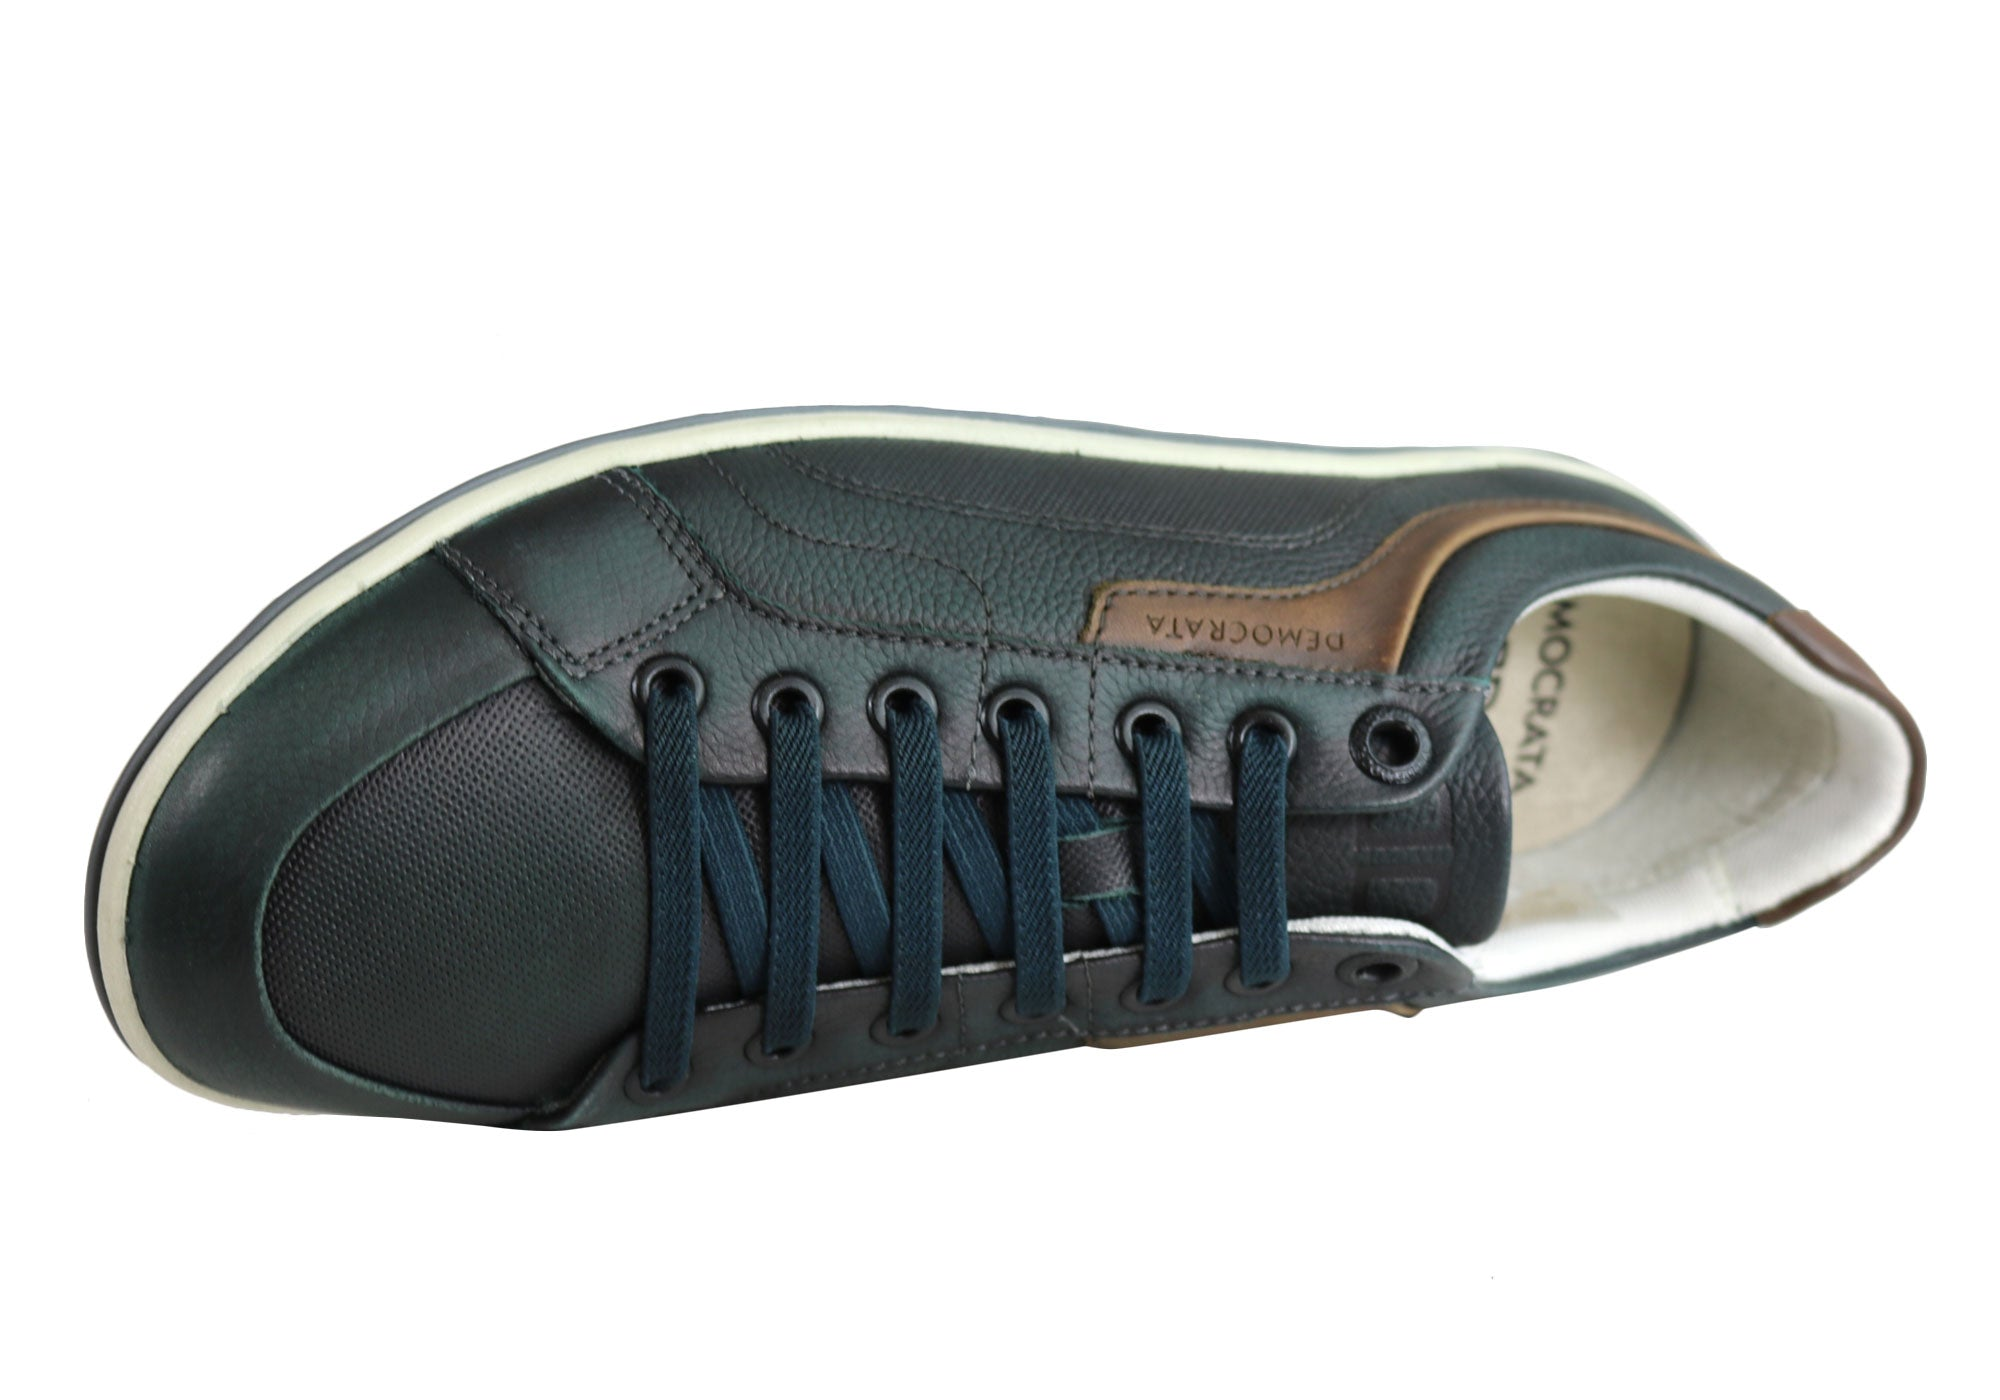 NEW-DEMOCRATA-MILES-MENS-LEATHER-SLIP-ON-CASUAL-SHOES-MADE-IN-BRAZIL thumbnail 7